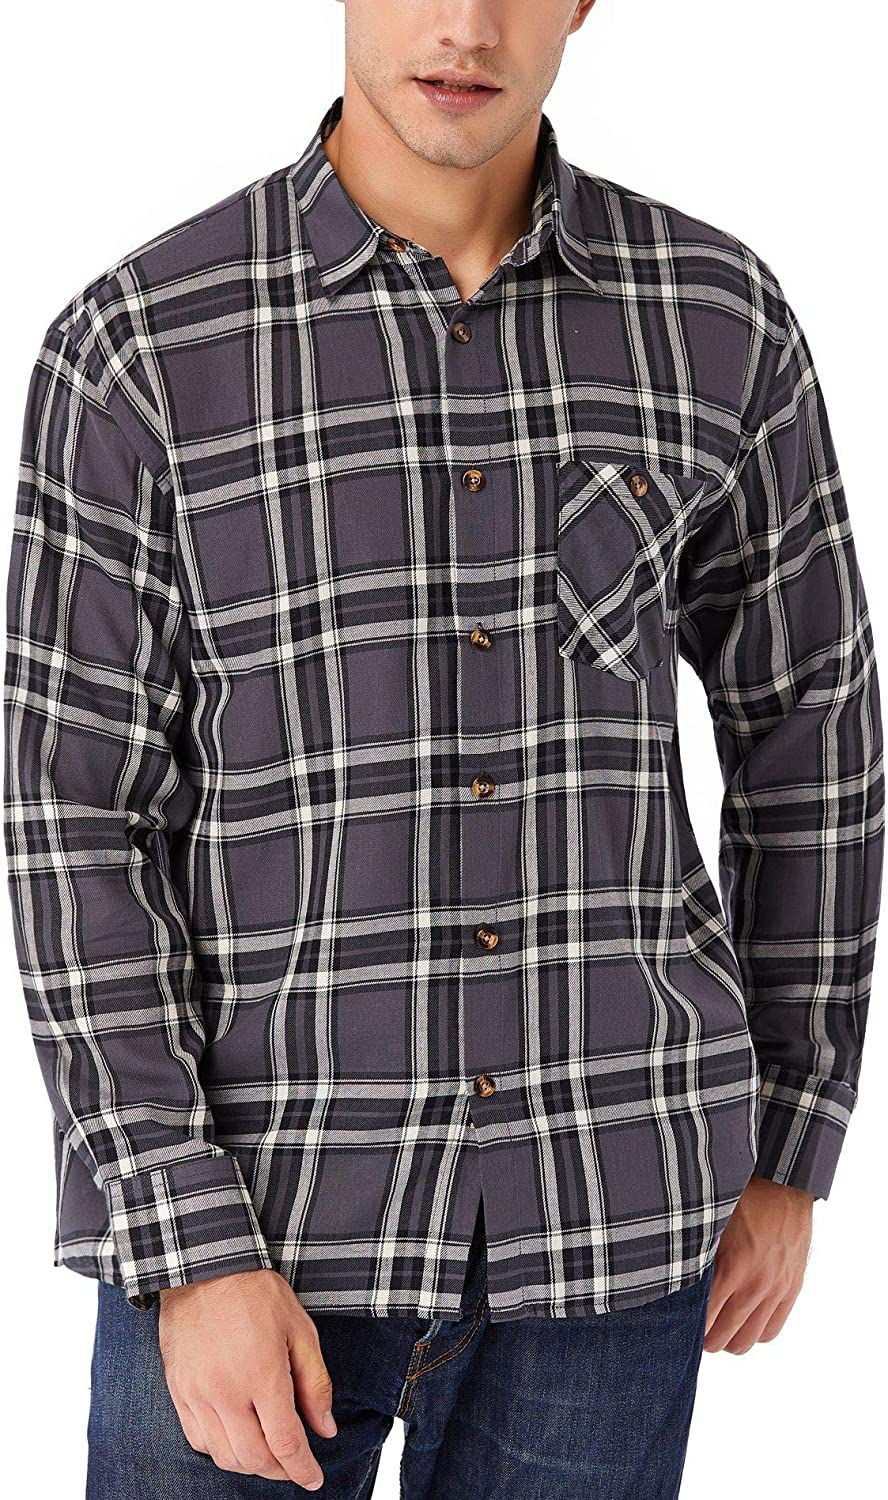 TAPULCO Men's specialty Rapid rise shop Long Sleeve Plaid Casu Cotton Fit Standard Checked